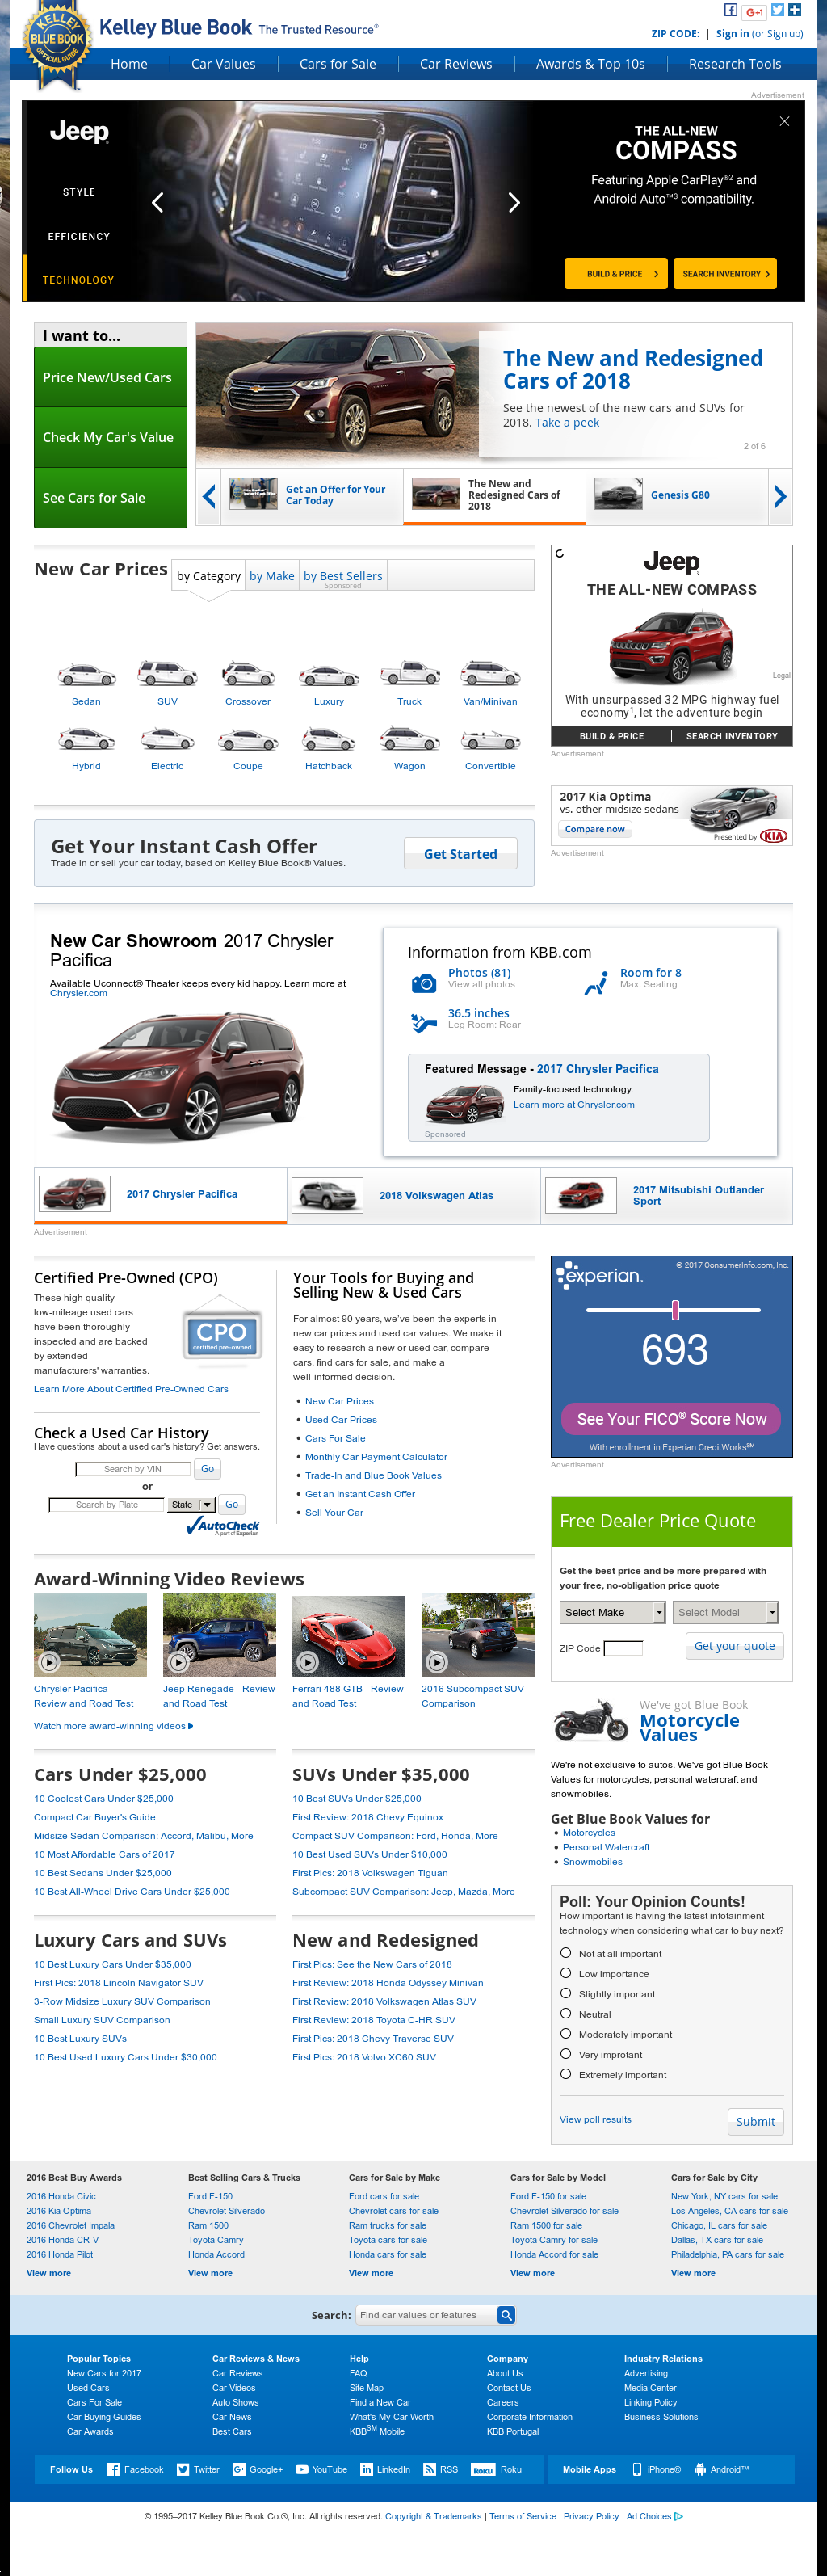 Kelley Blue Book petitors Revenue and Employees Owler pany